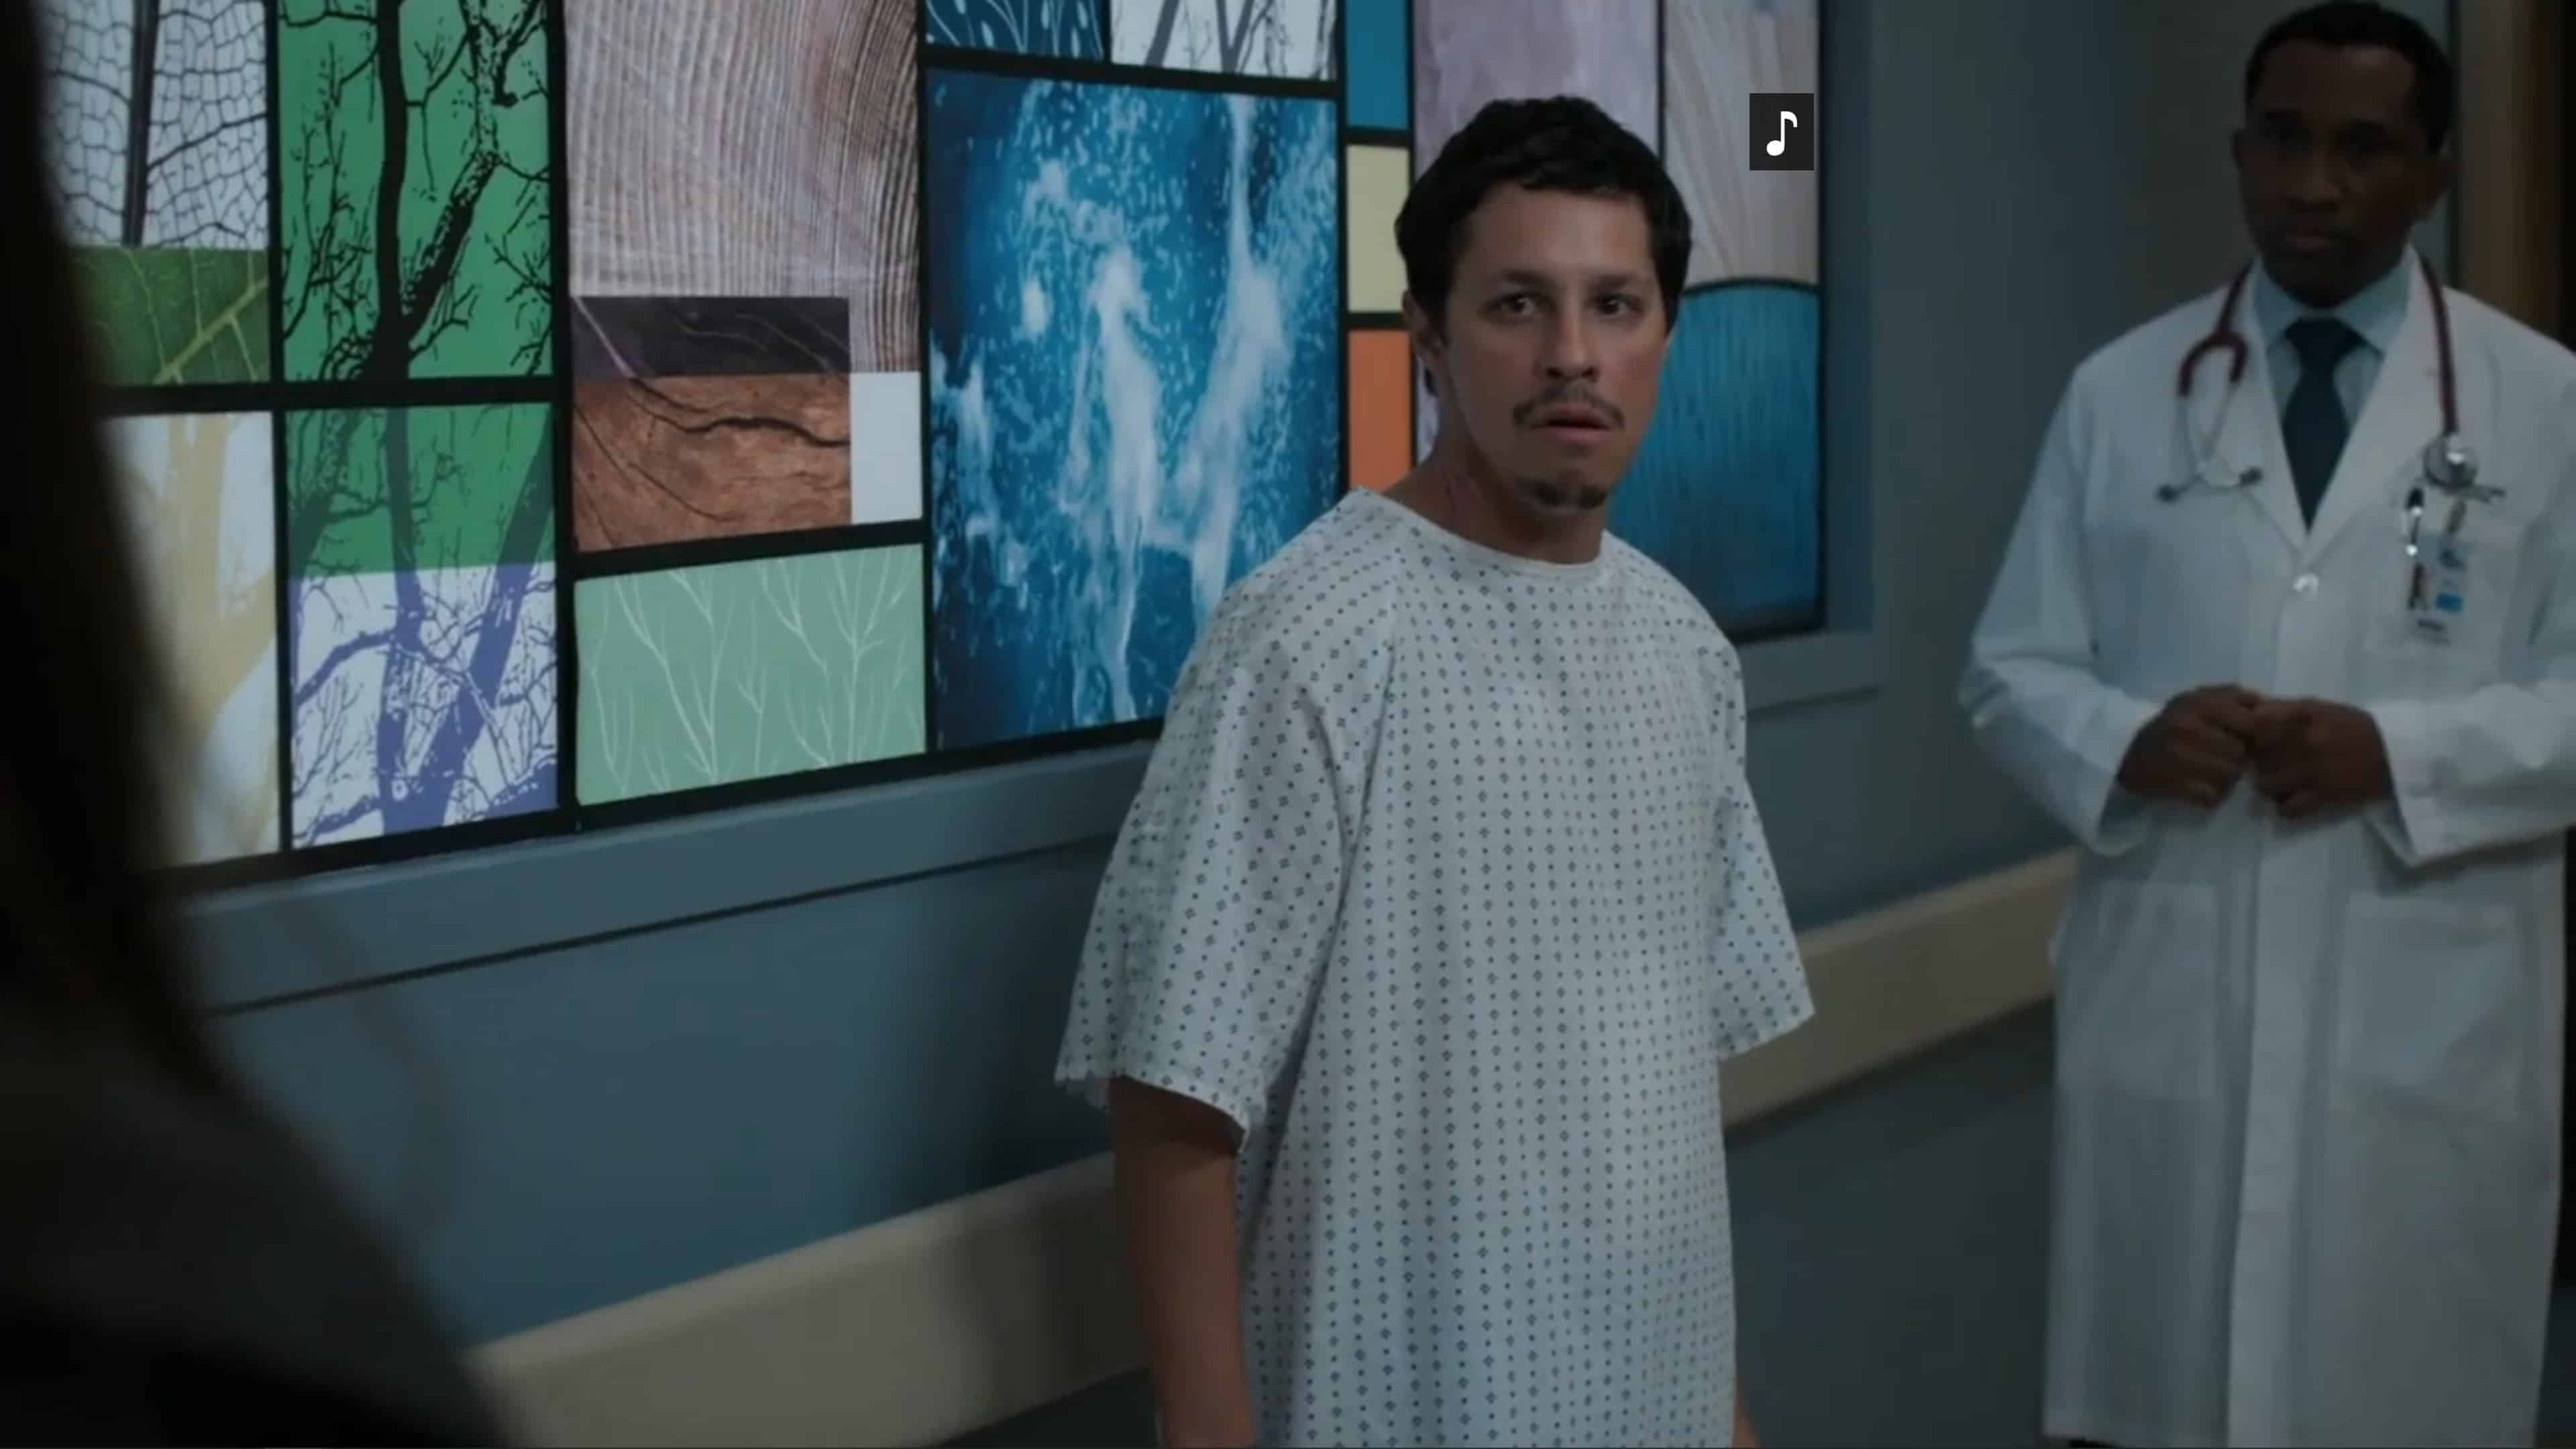 Ben (David Del Rio) after waking up from being knocked out